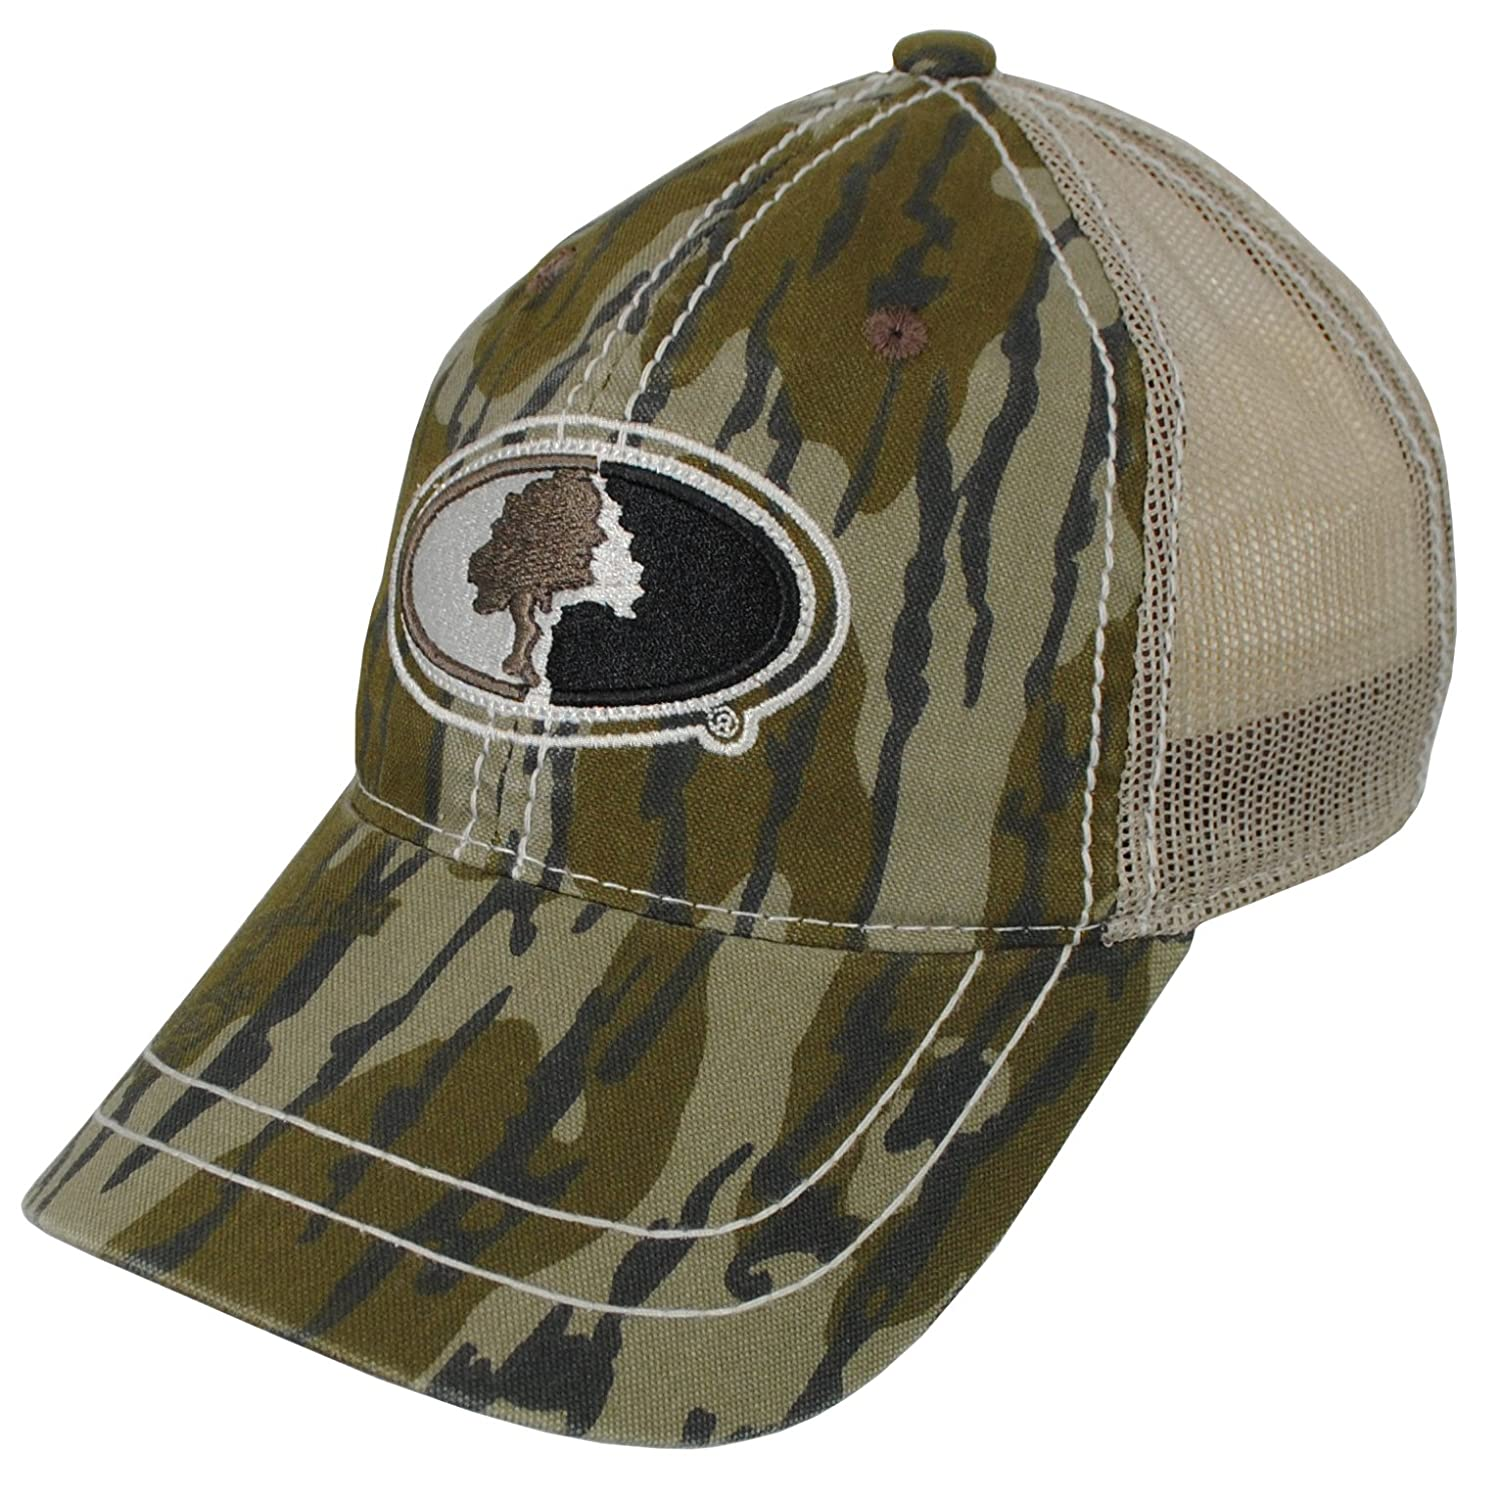 adea7f463d01e Amazon.com : Mossy Oak Camo Mesh Back Hat with Adjustable Snap Back in  Multiple Camouflage Patterns : Sports & Outdoors